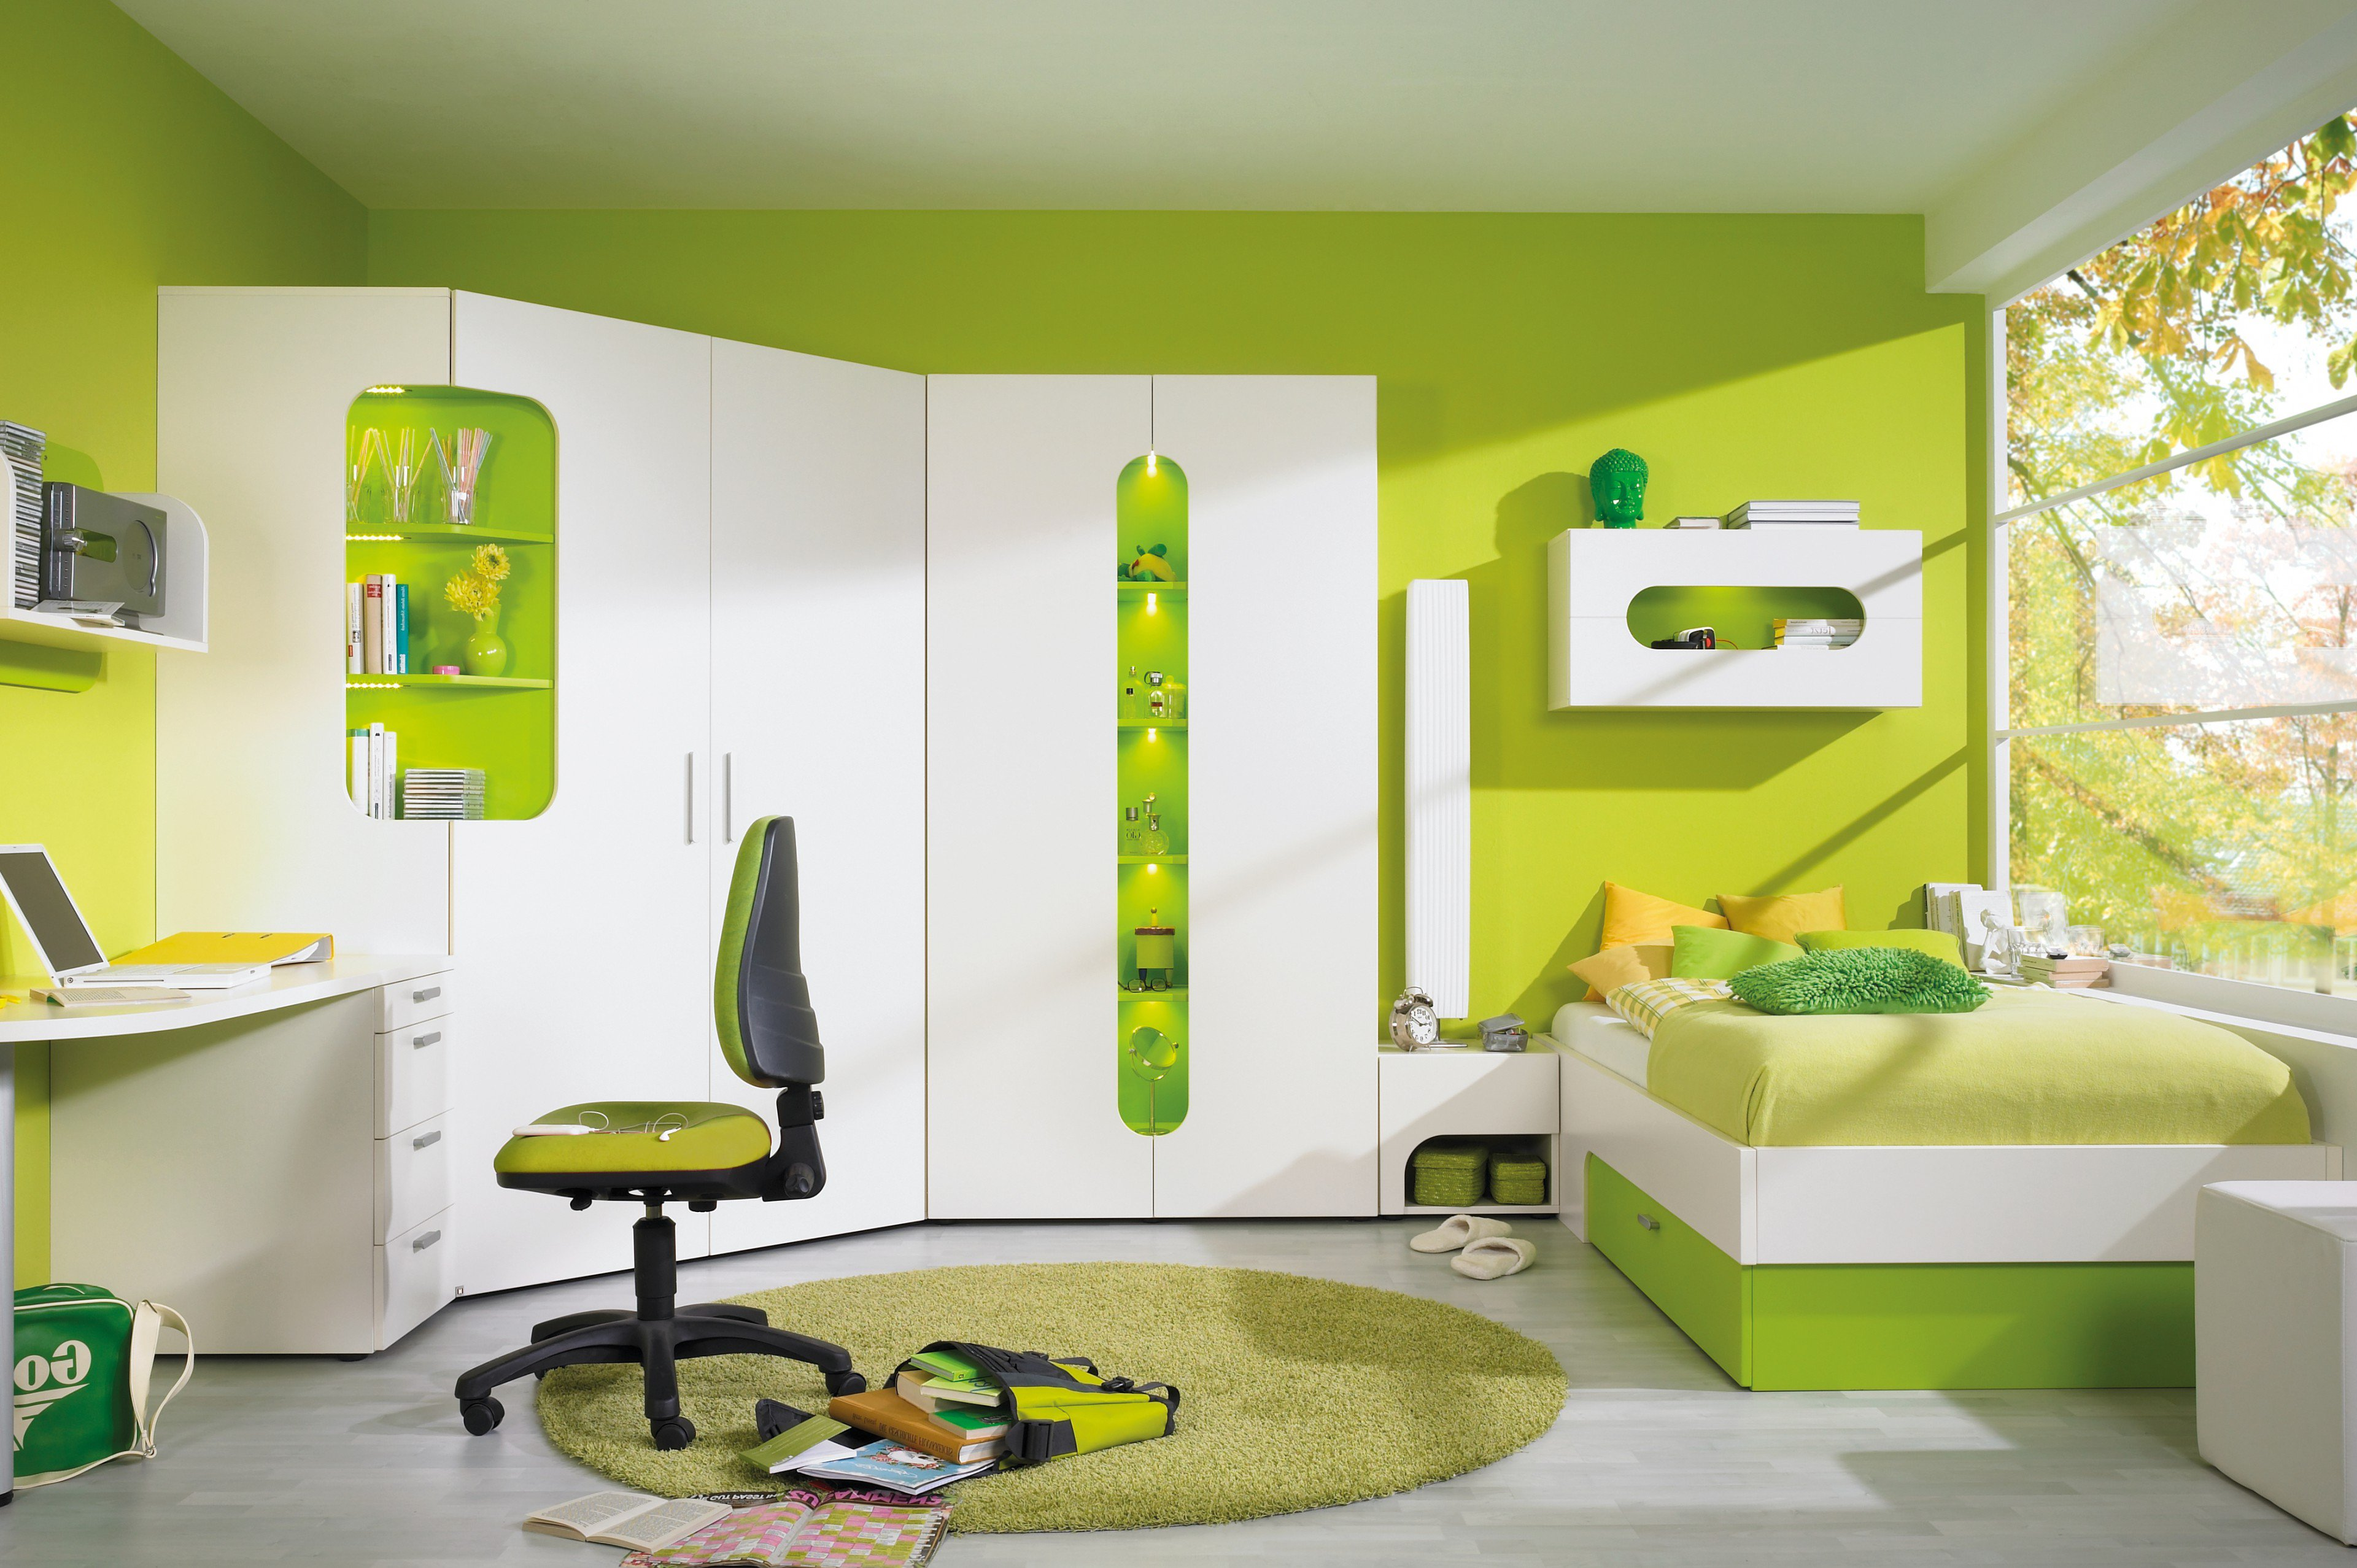 max i von rudolf liege und eckschrank wei gr n m bel letz ihr online shop. Black Bedroom Furniture Sets. Home Design Ideas